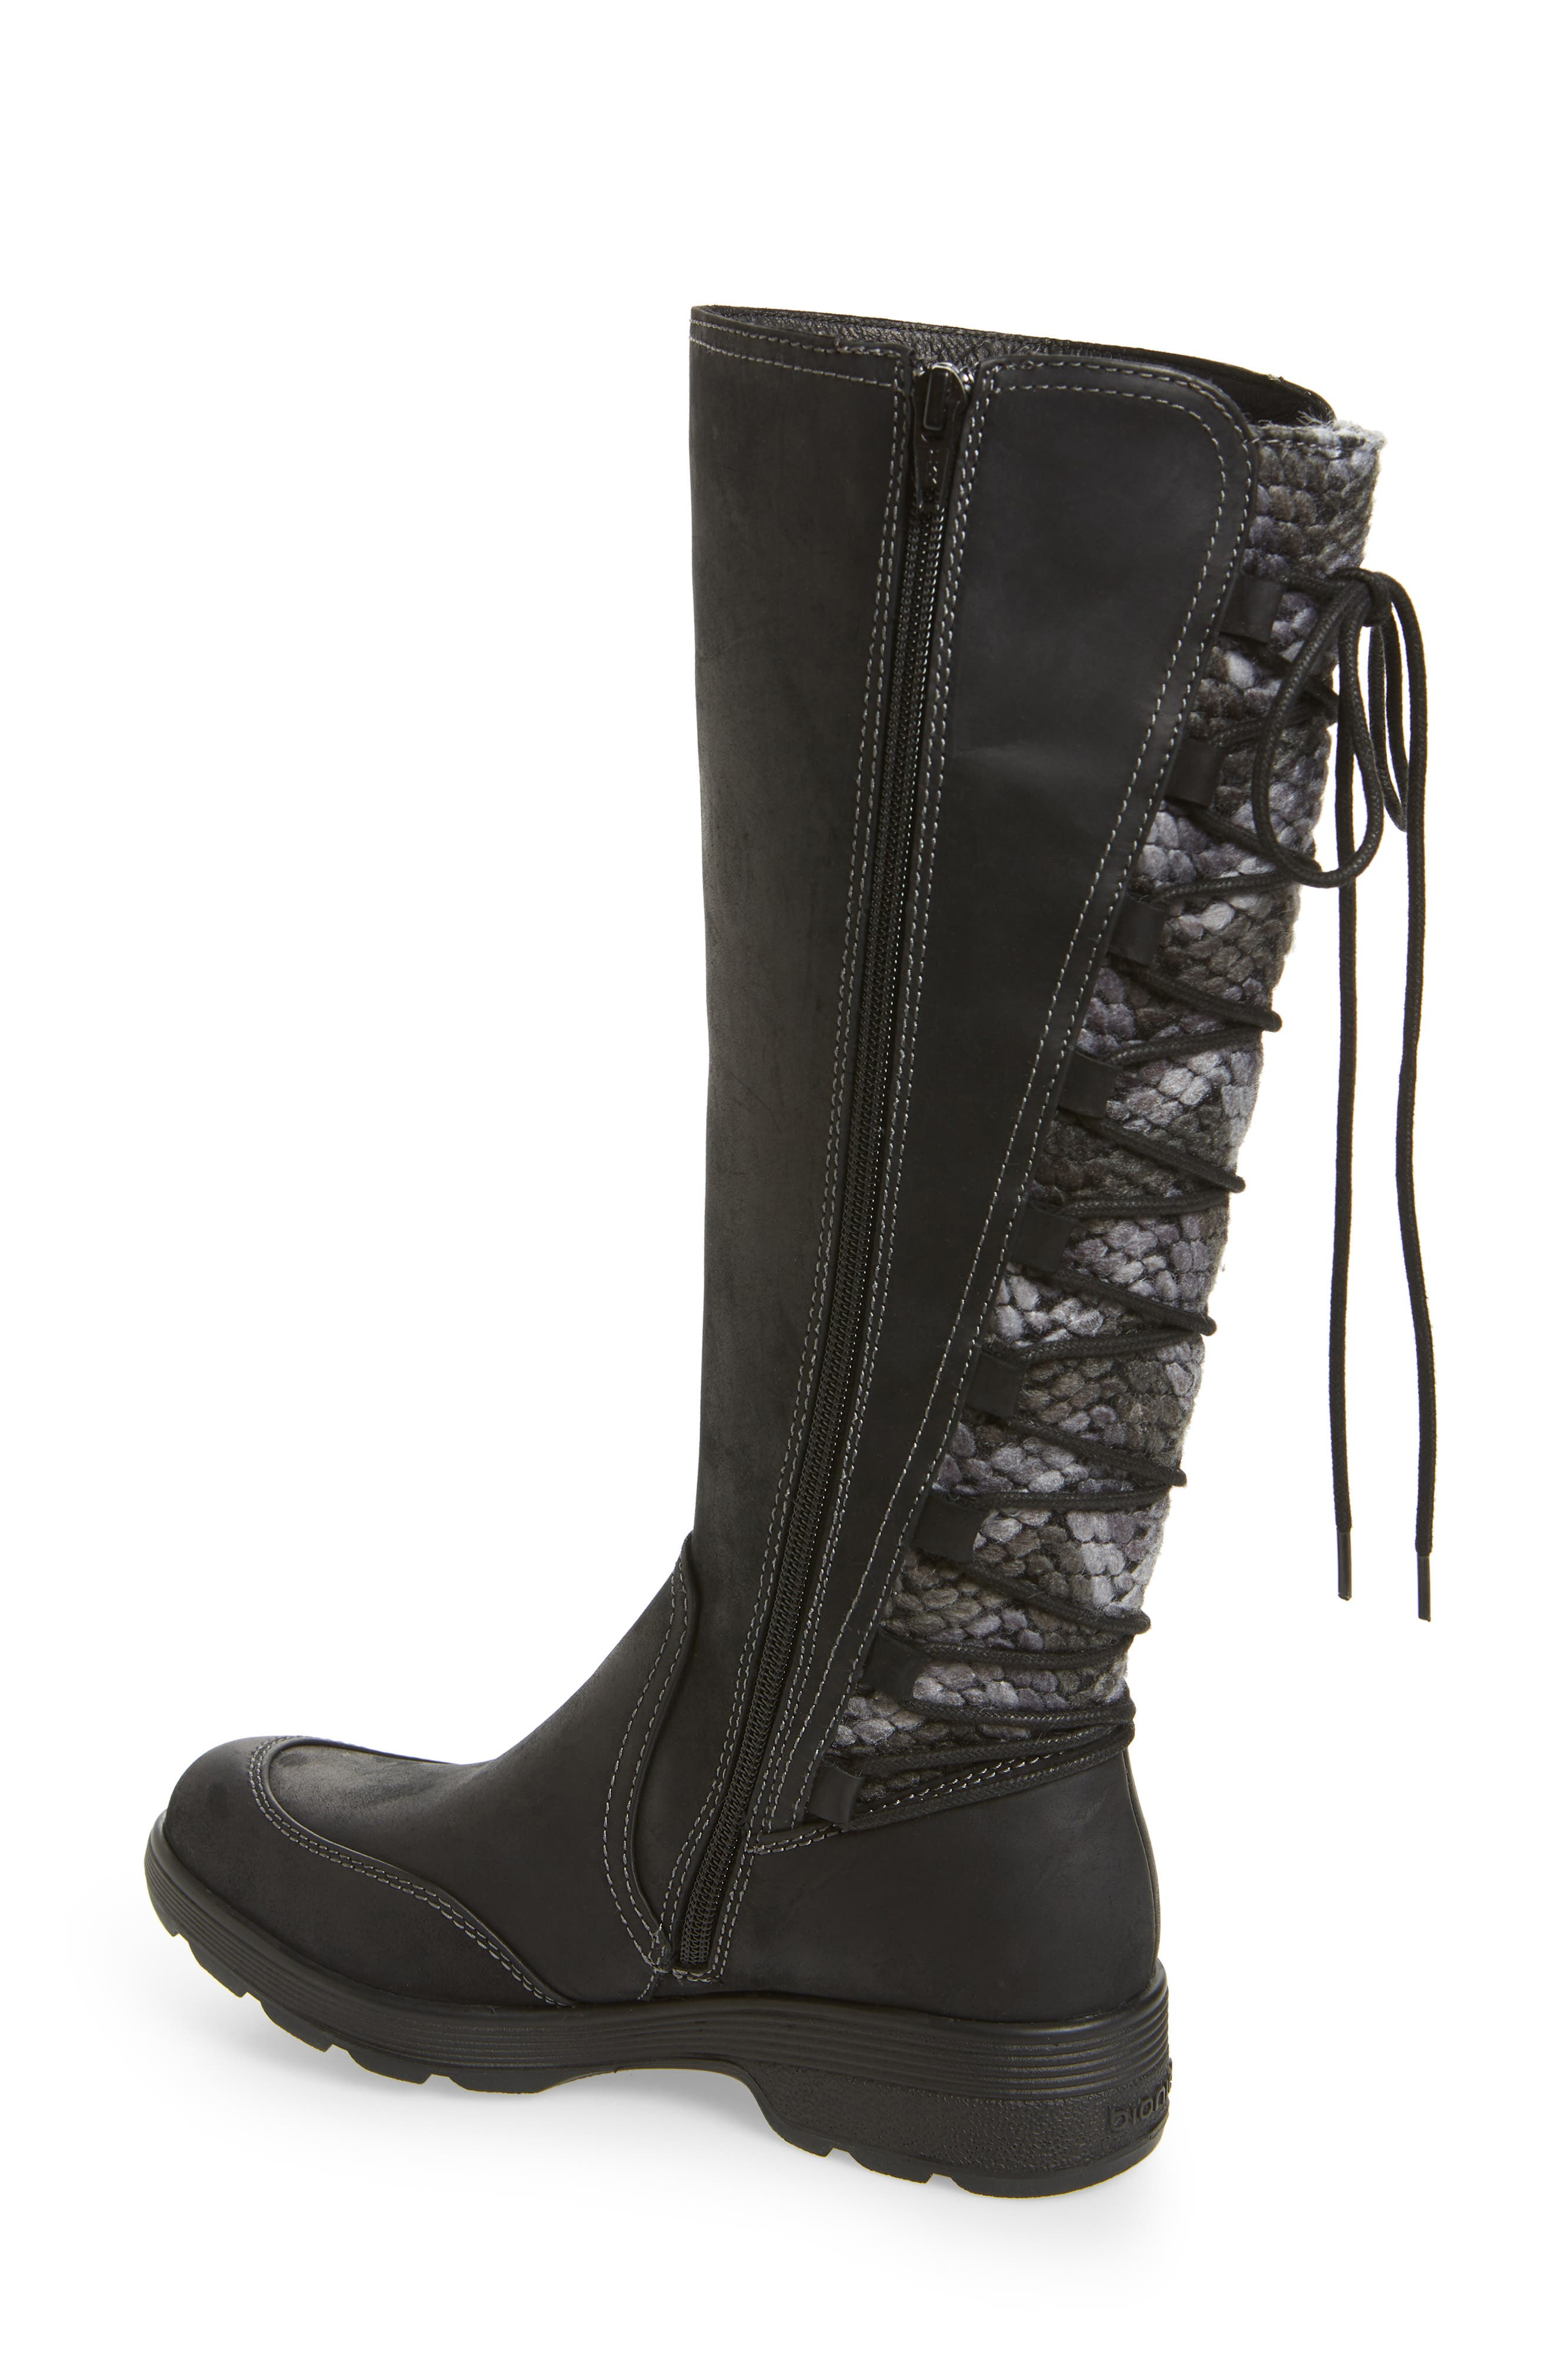 Epping Waterproof Knee High Boot,                             Alternate thumbnail 2, color,                             BLACK LEATHER